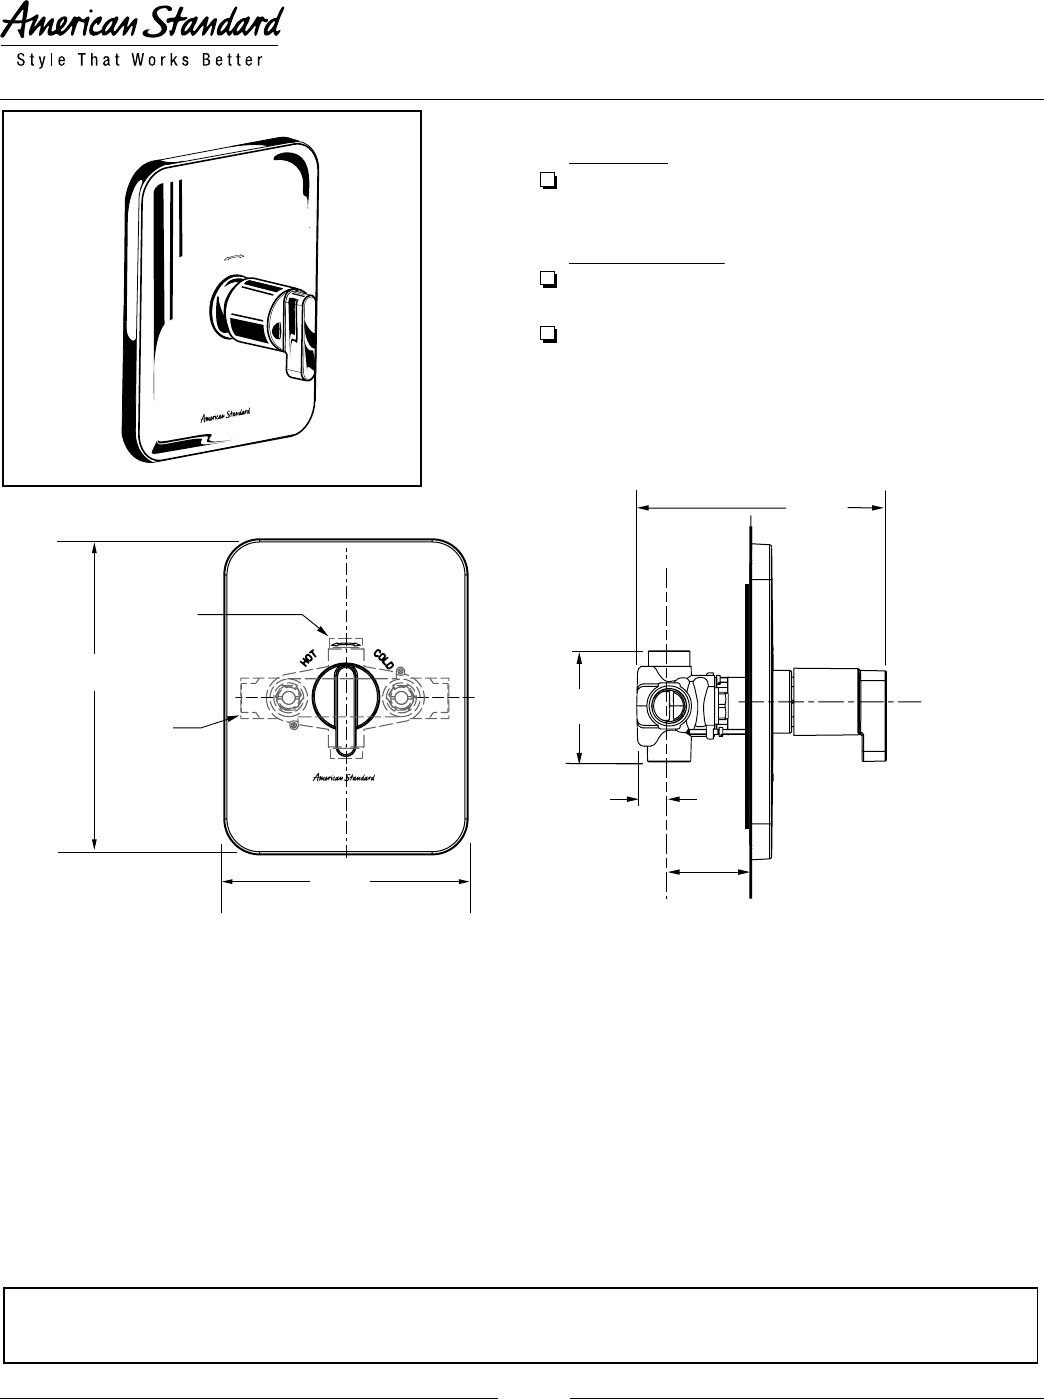 American Standard Thermostat R510 User Guide